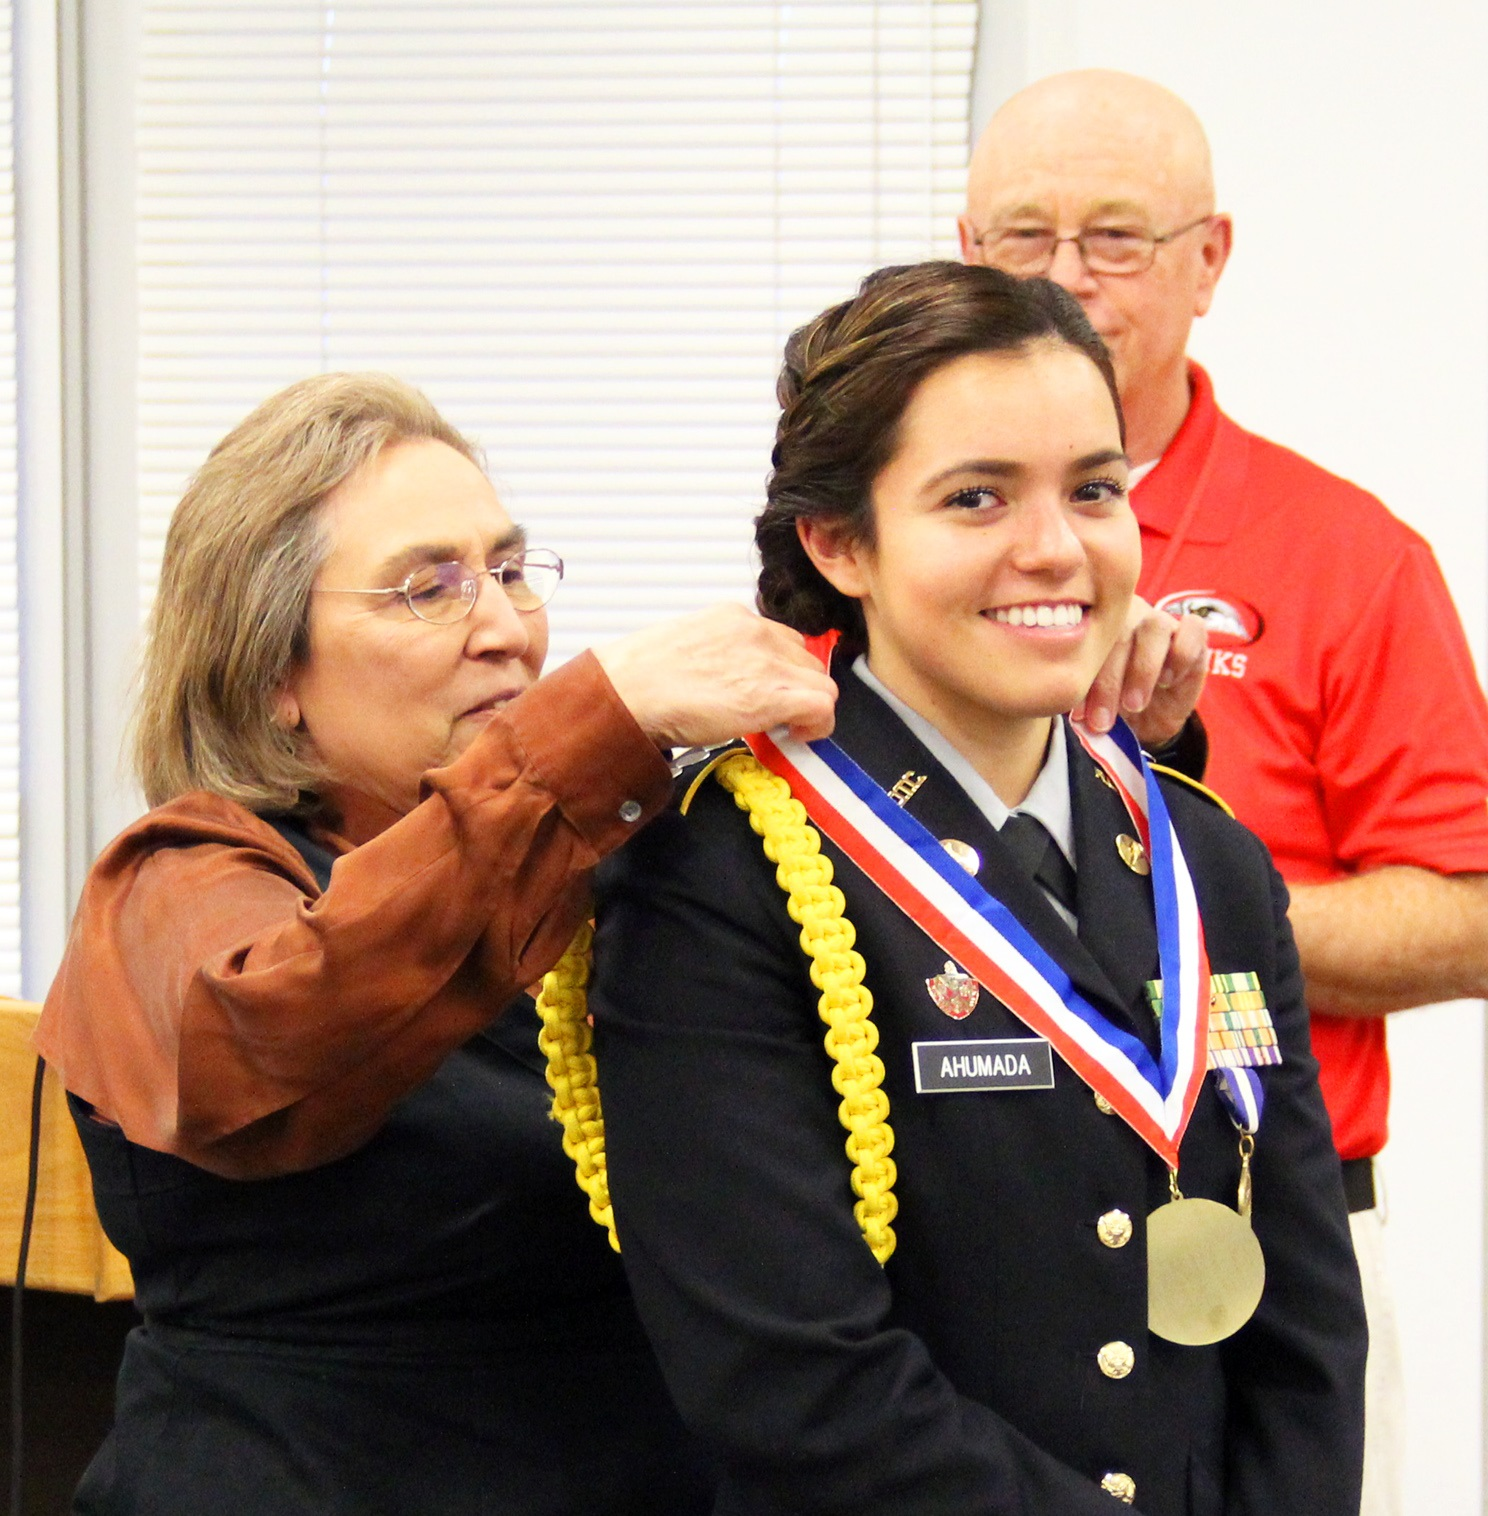 Rio Rico High School JROTC Student Receives Presidential Service Volunteer Awards